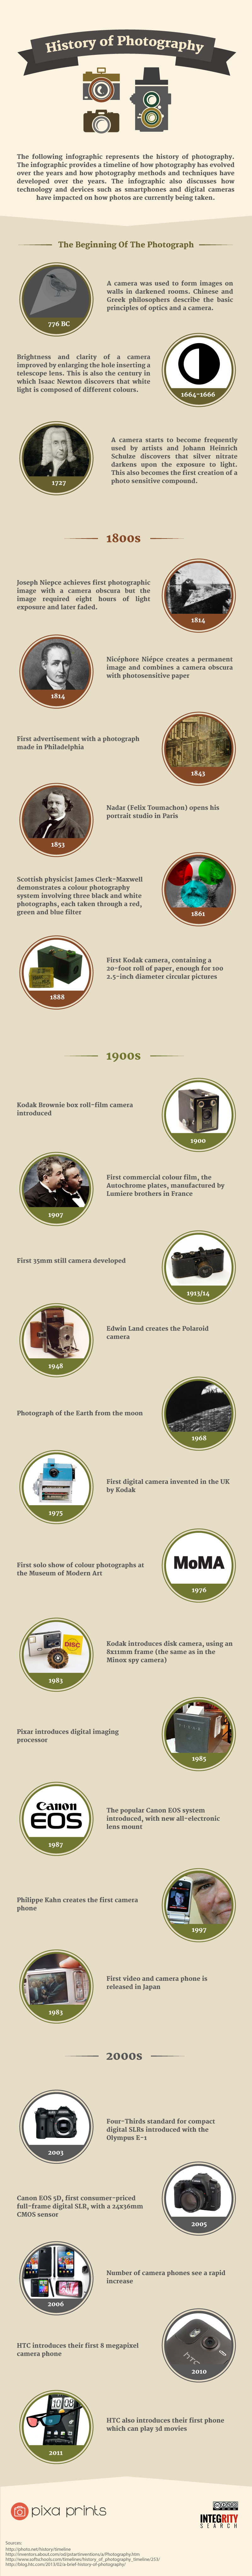 History Of Photography Infographic - Icon Photography School